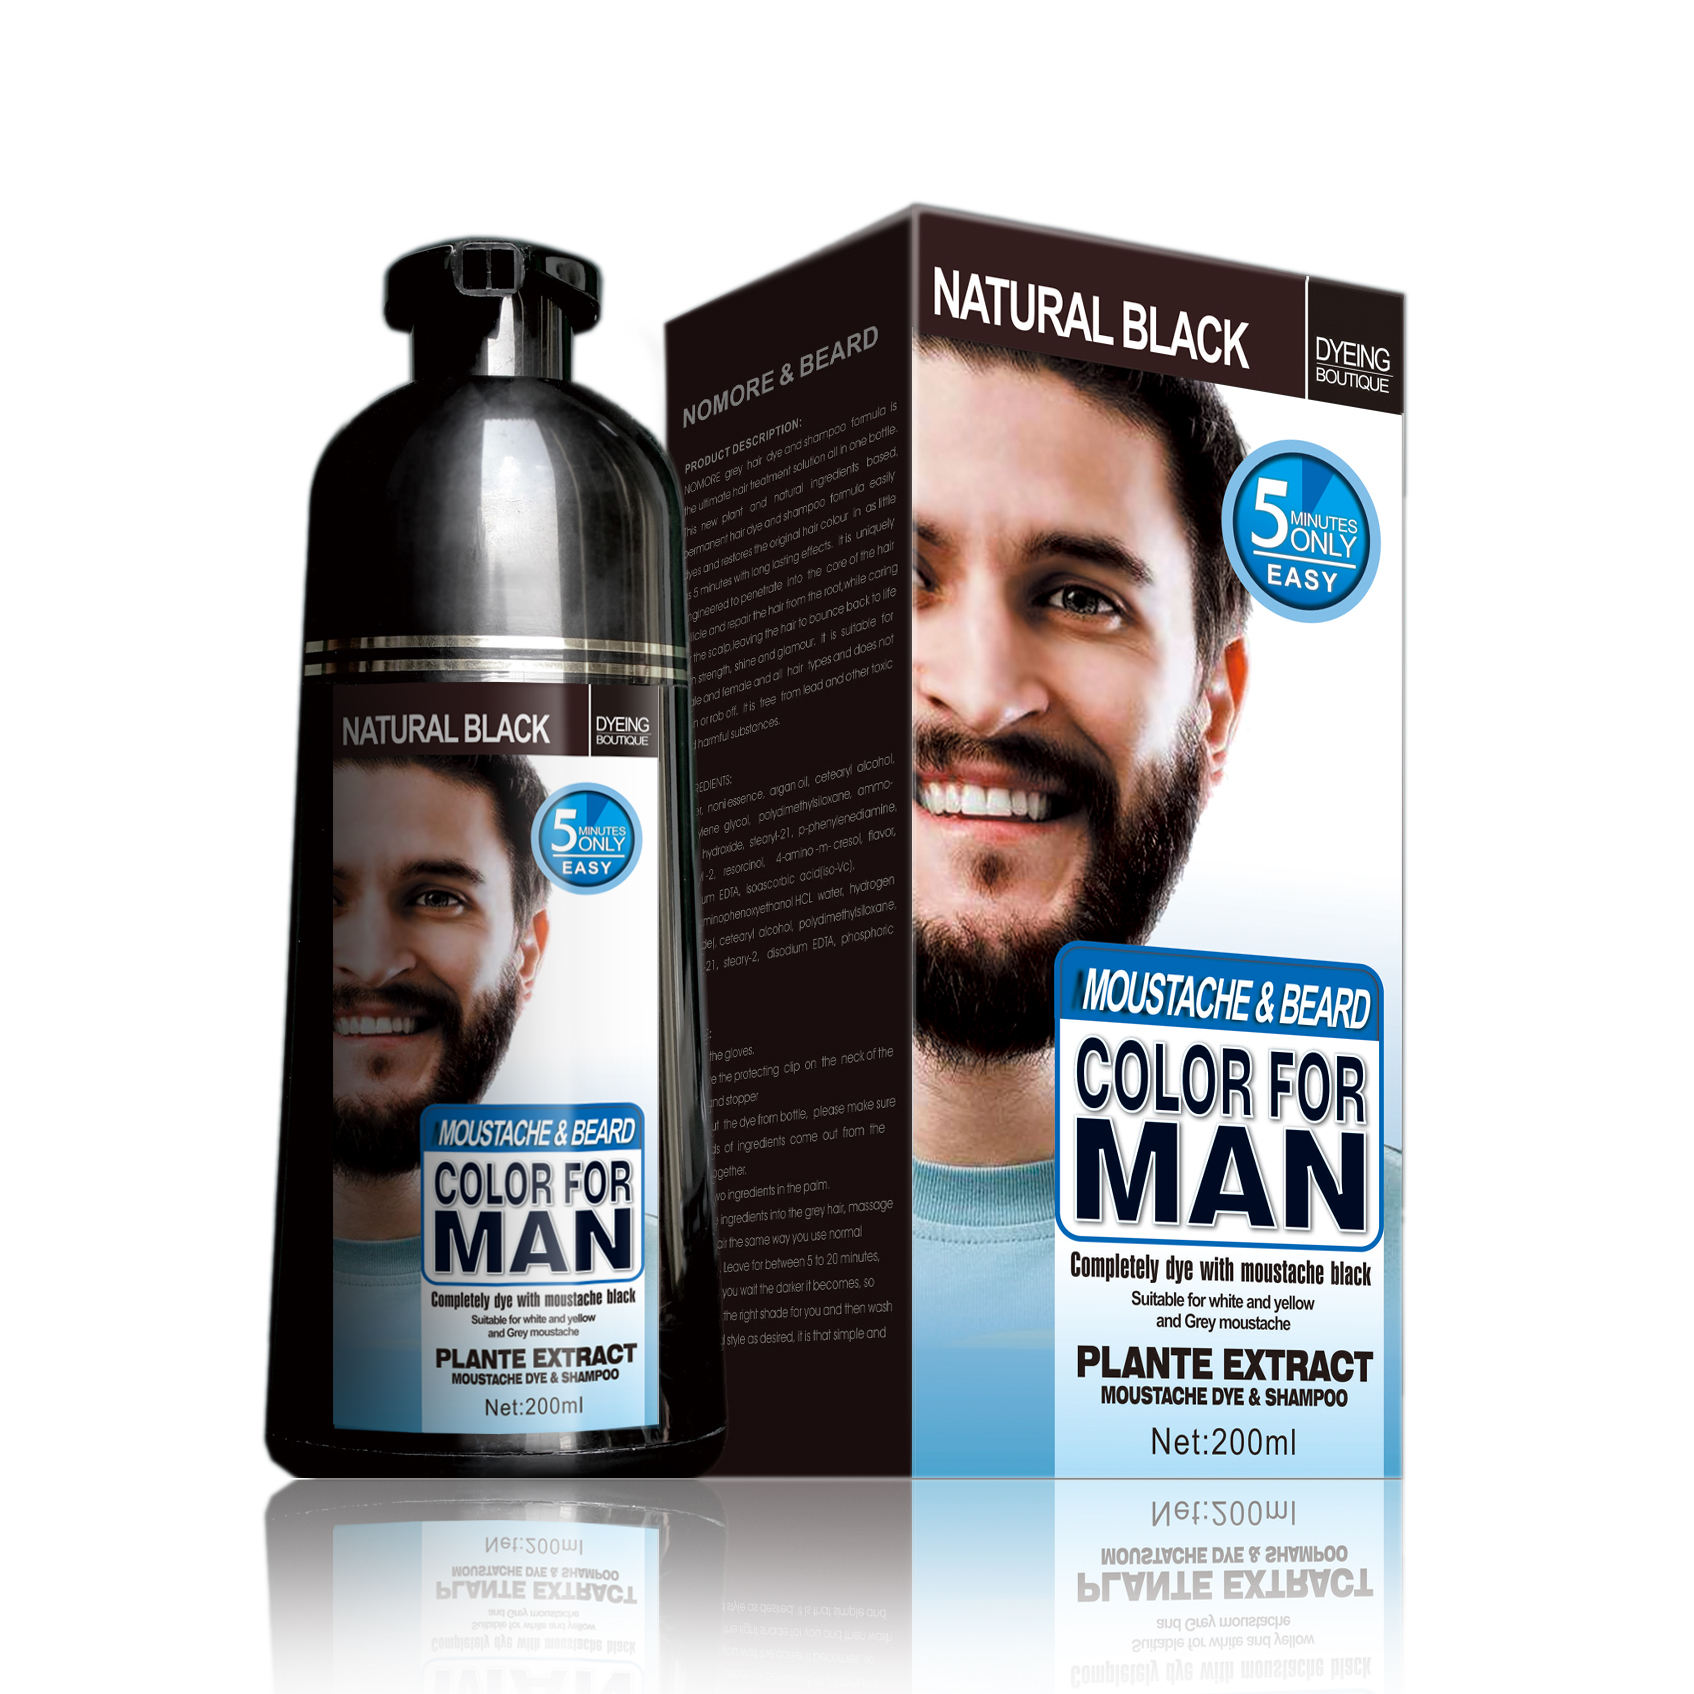 natural herbal extract black beard color dye shampoo for man beard or hair to covering white or brown beard color dye